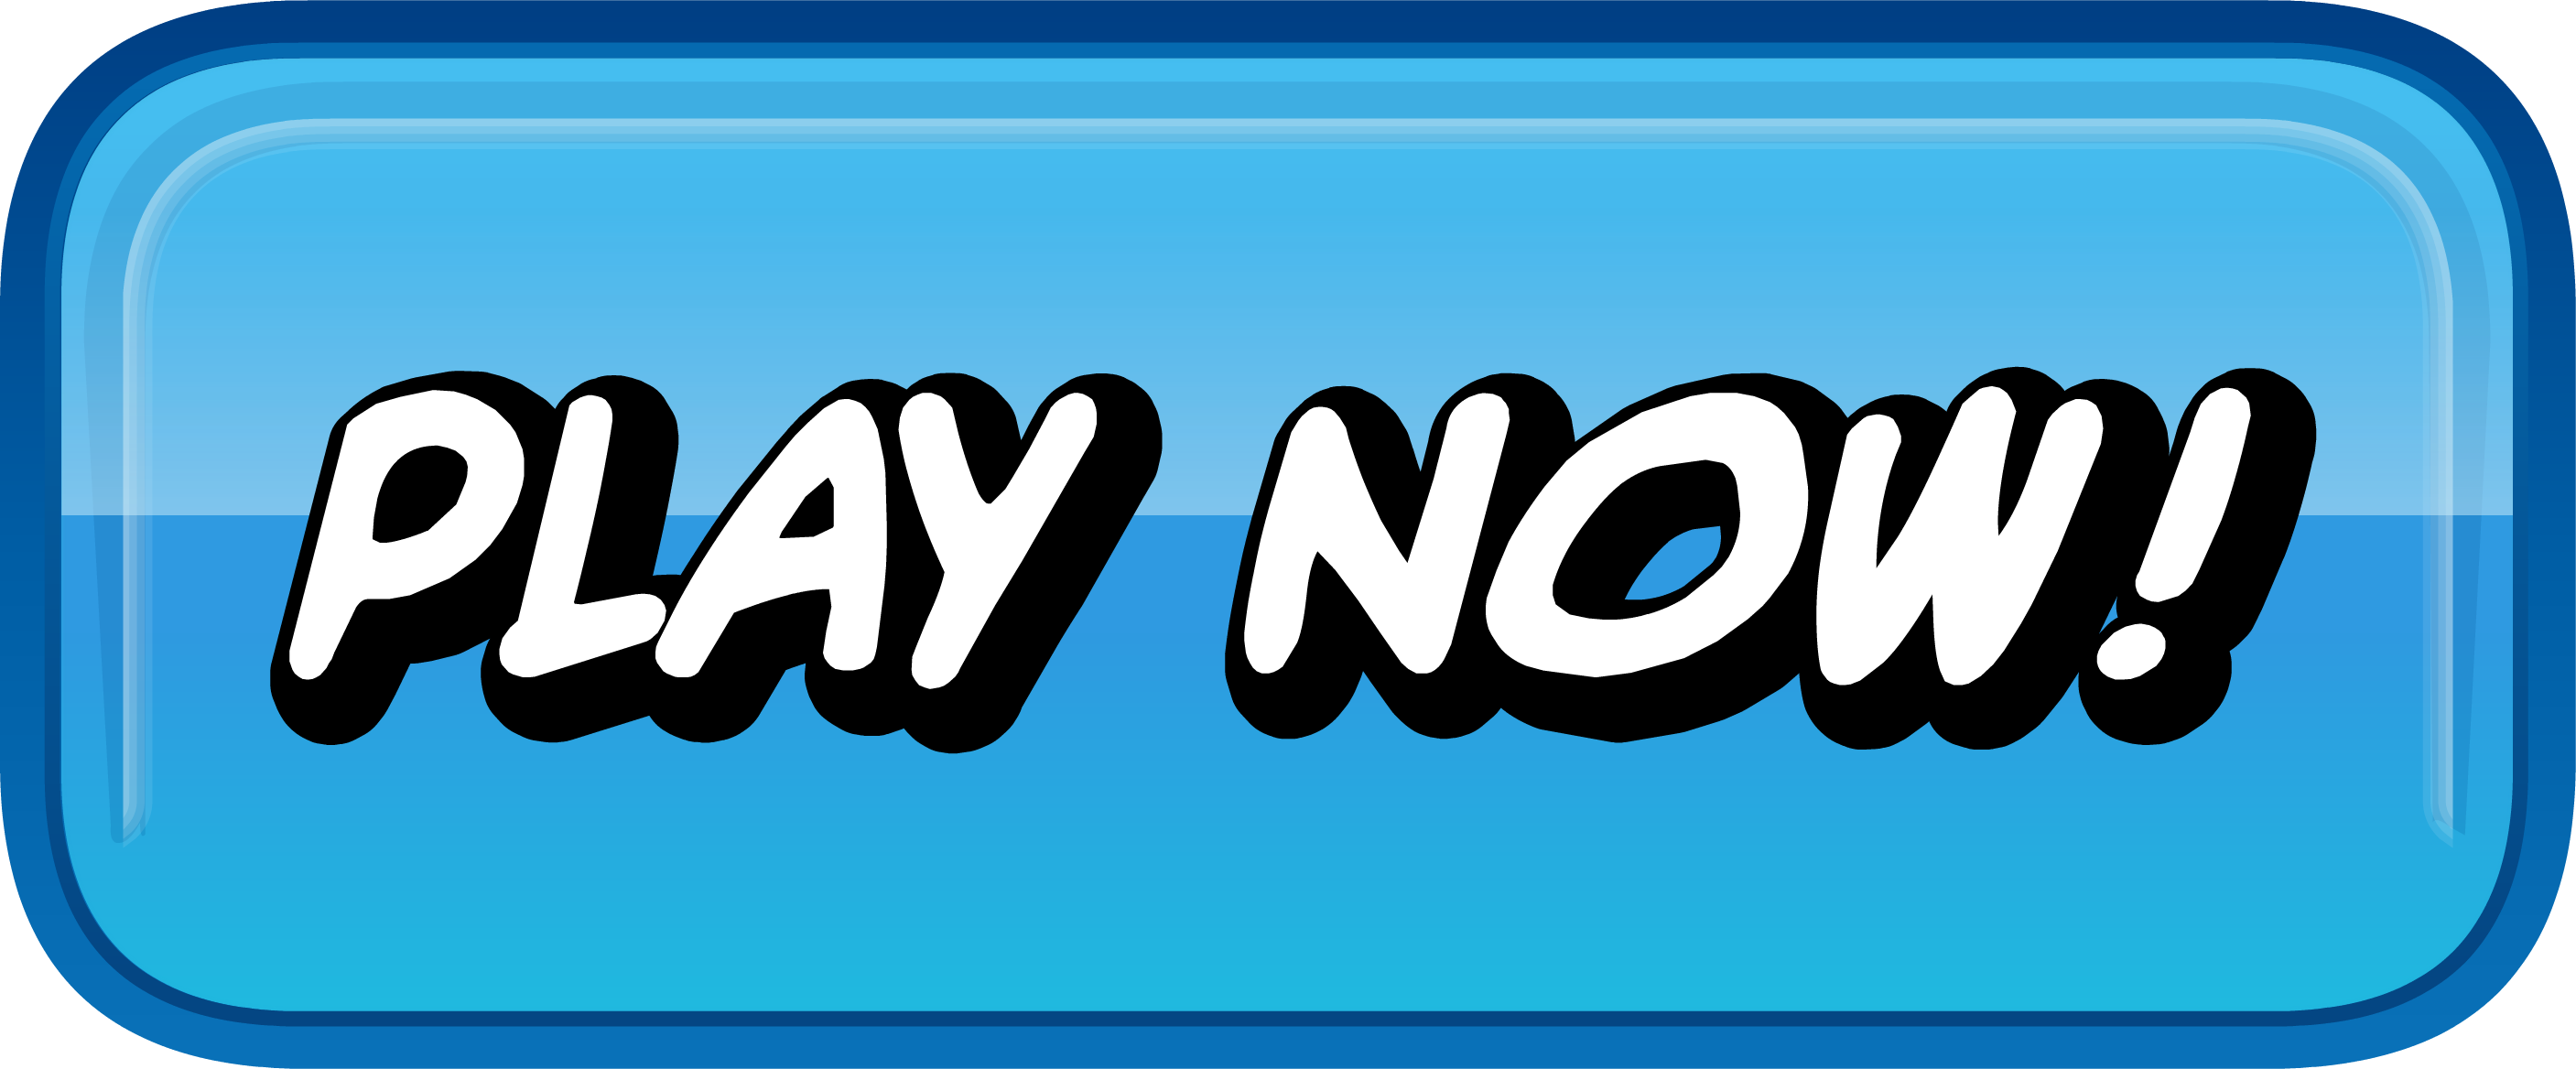 5 Line Multiplay Casino Slot Online | PLAY NOW